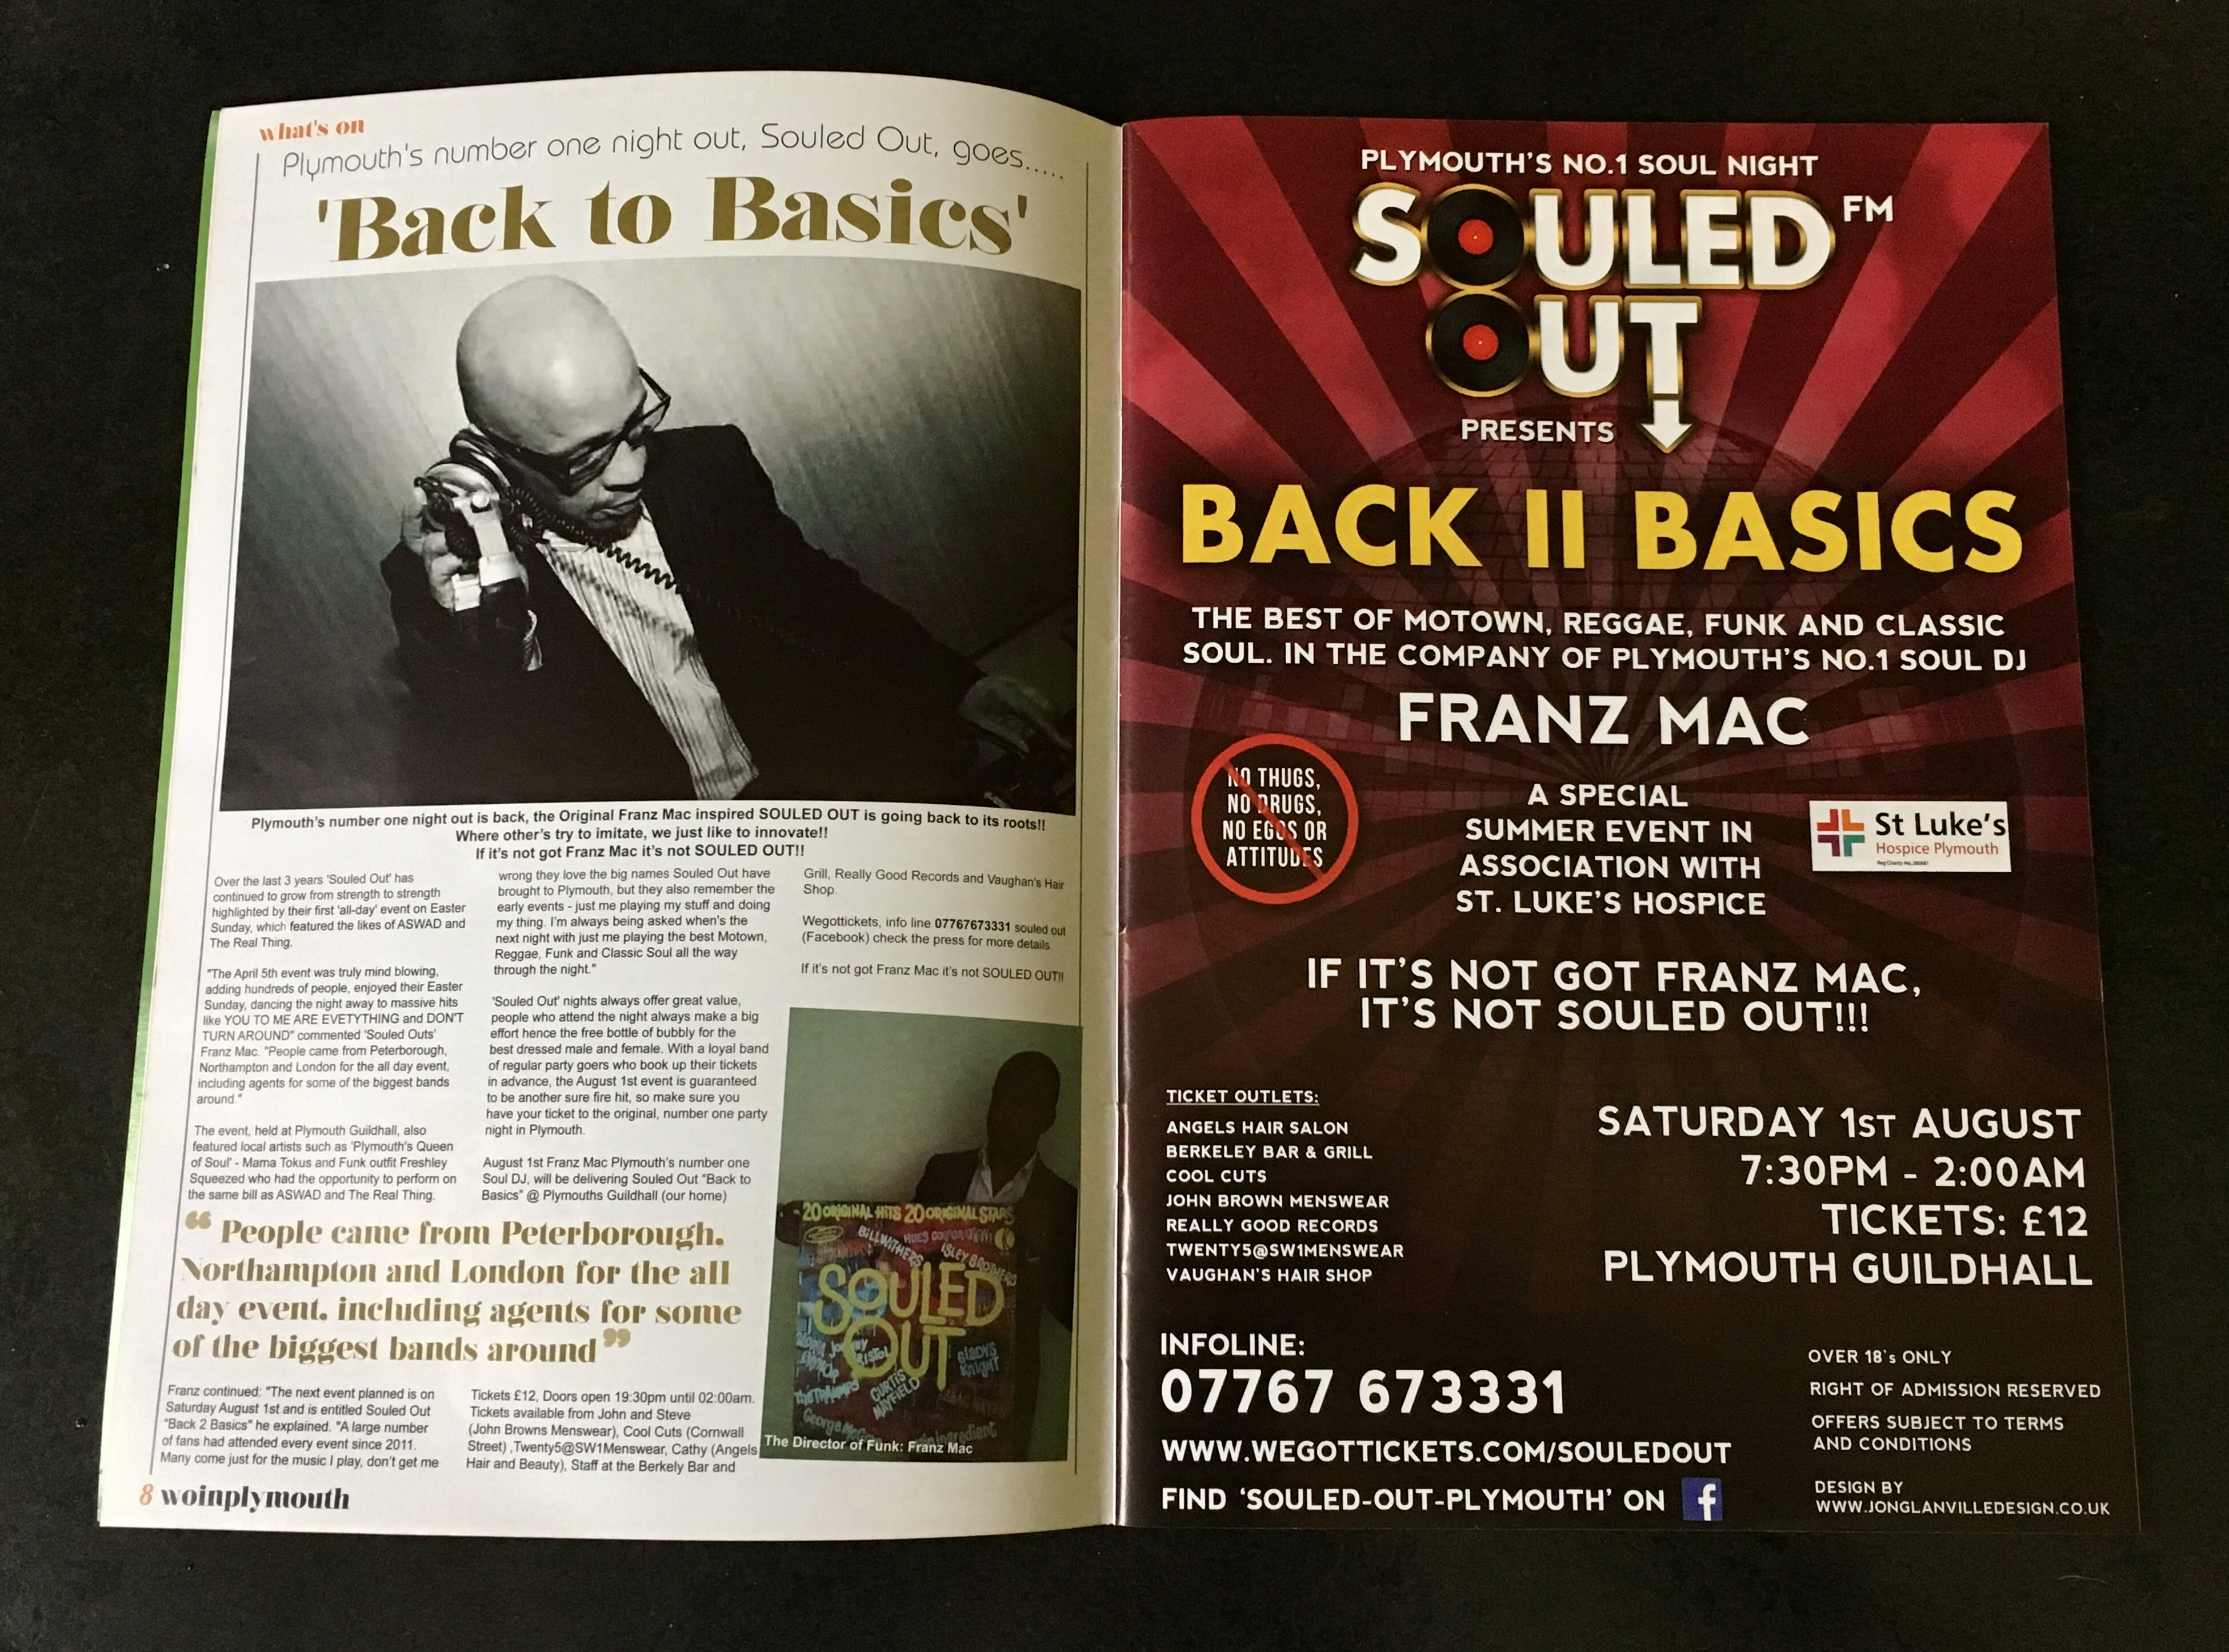 Souled Out summer music flyer featured in the May/June 2015 edition of What's On In Plymouth Magazine